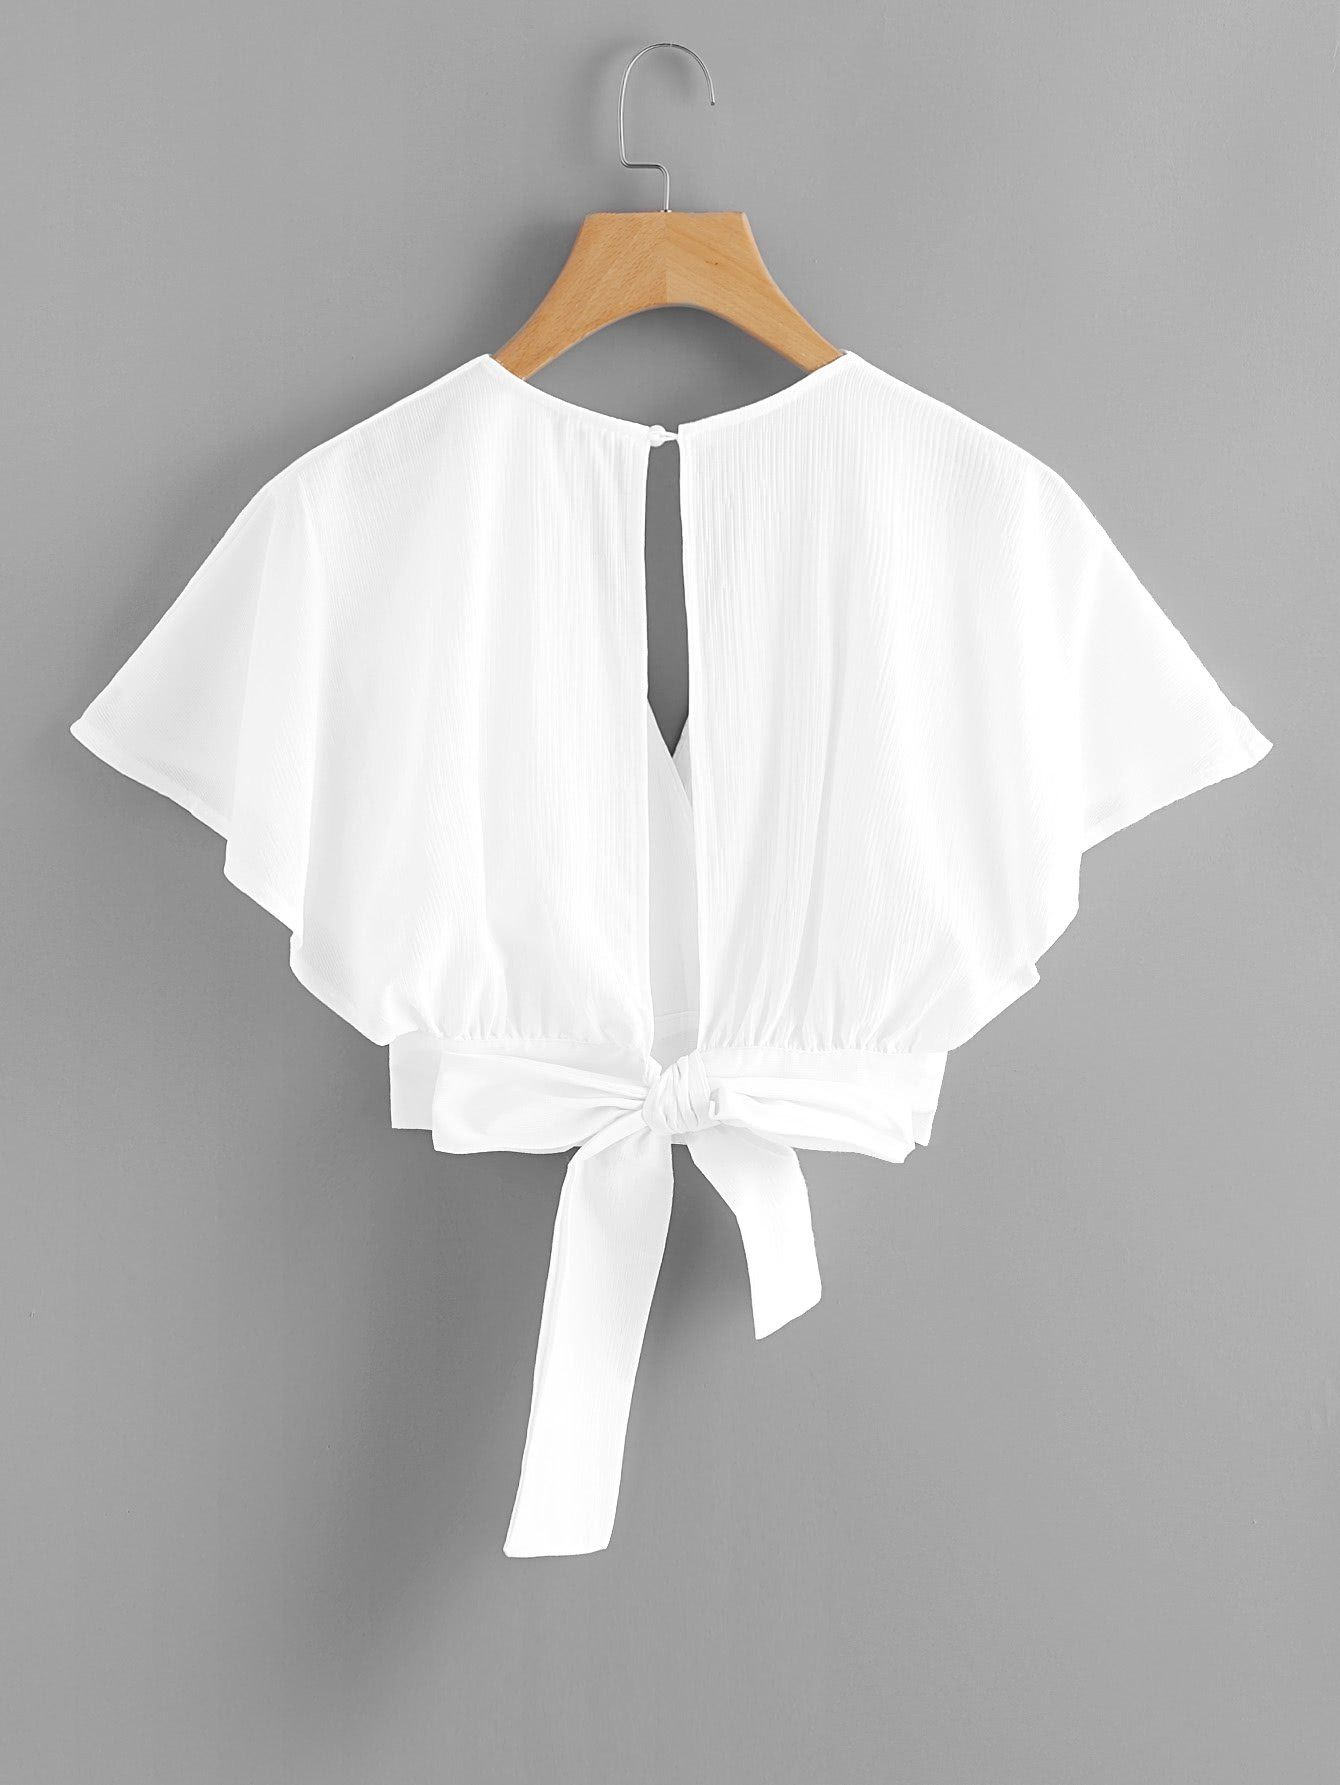 89a54aa36396 Material: Polyester Color: White Pattern Type: Plain Collar: V Neck Style: